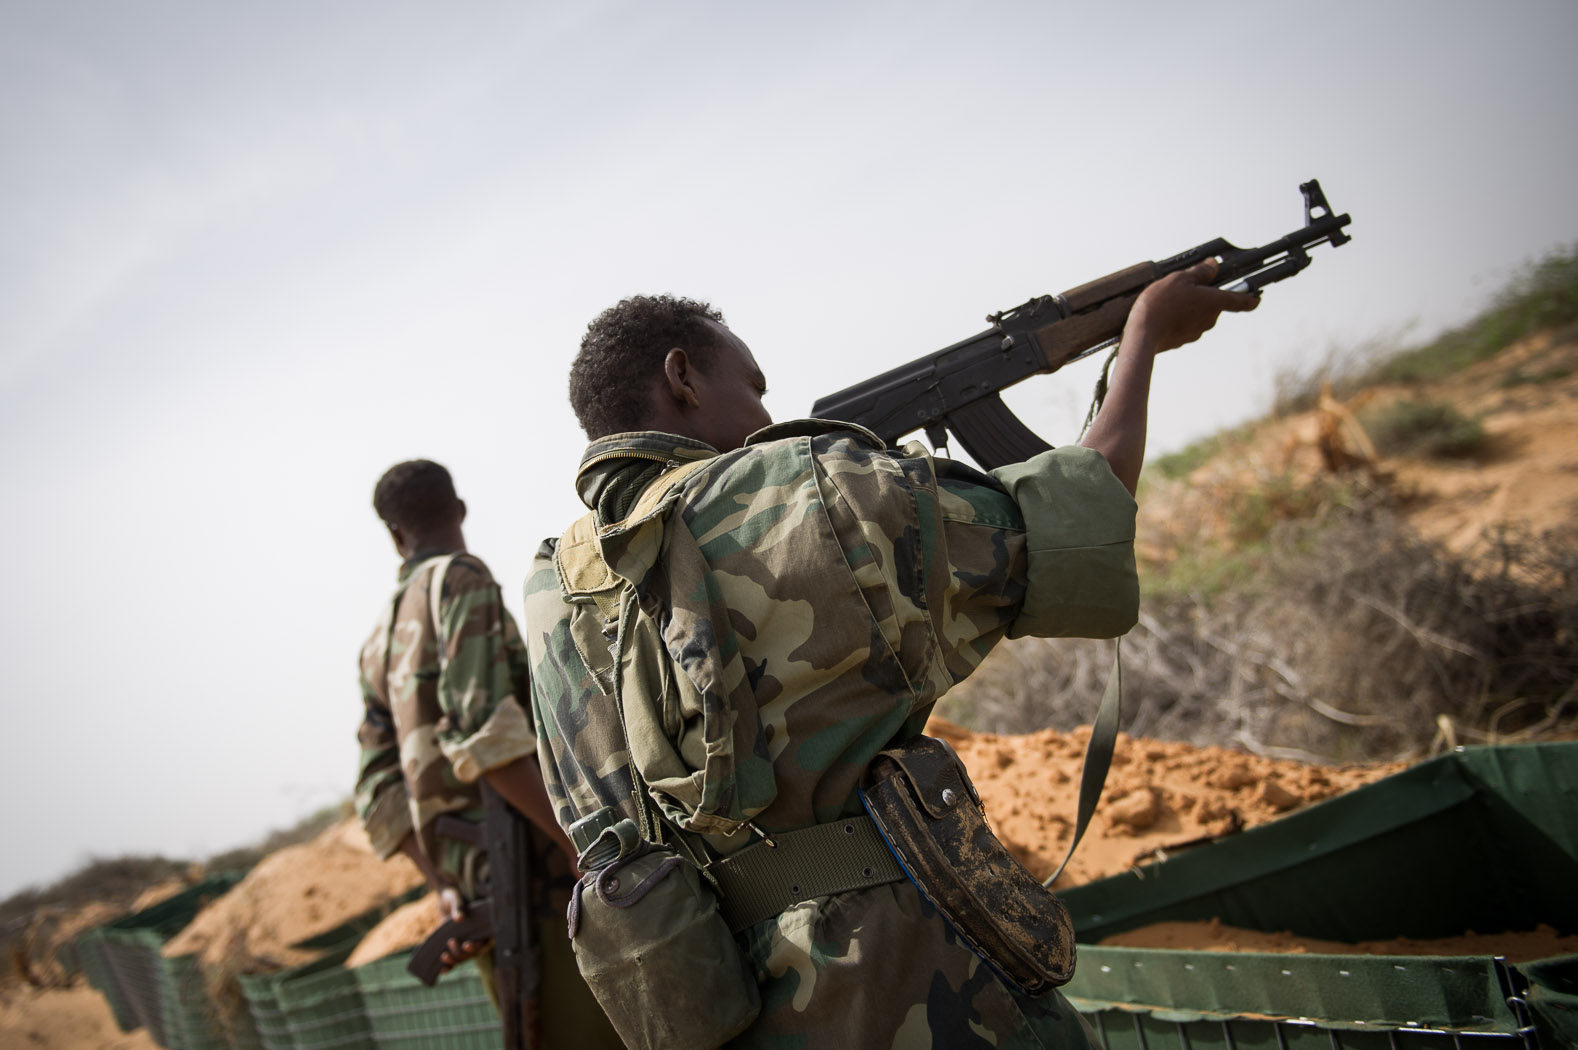 African Union forces, allied with Somali government soldiers, have expelled Islamist militants al-Shabaab from the capital, providing a huge increase in security for the city's residents as well as international visitors.